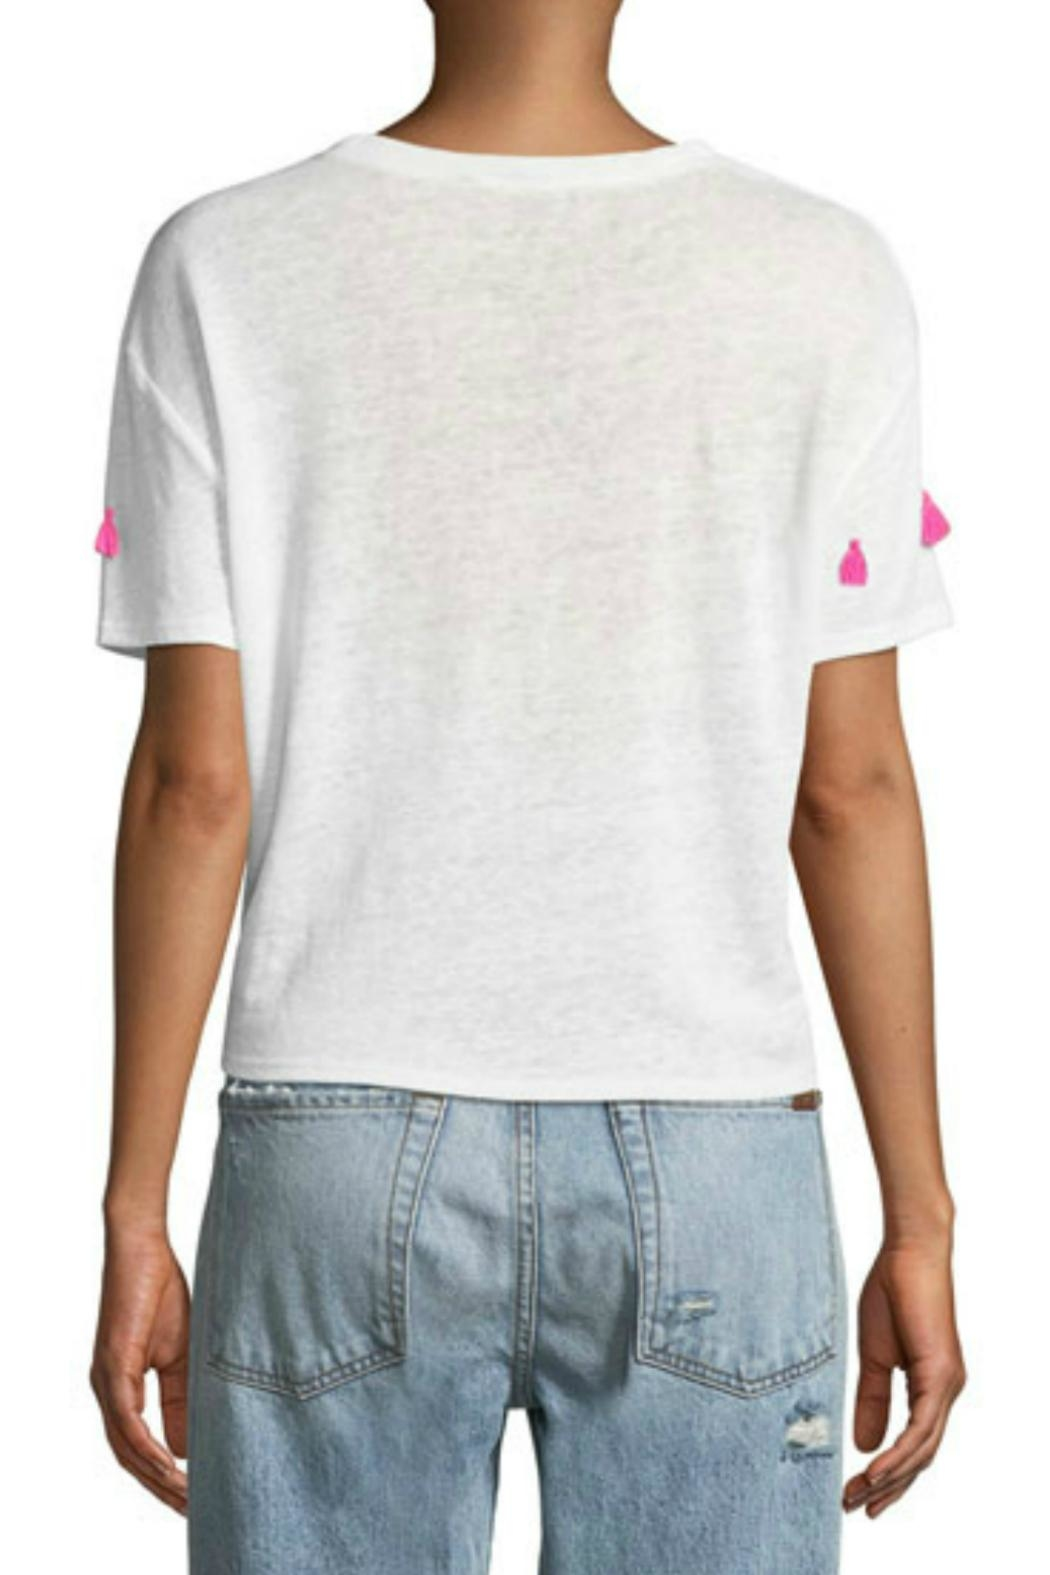 Generation Love  Tassel Embellished Tee - Front Full Image